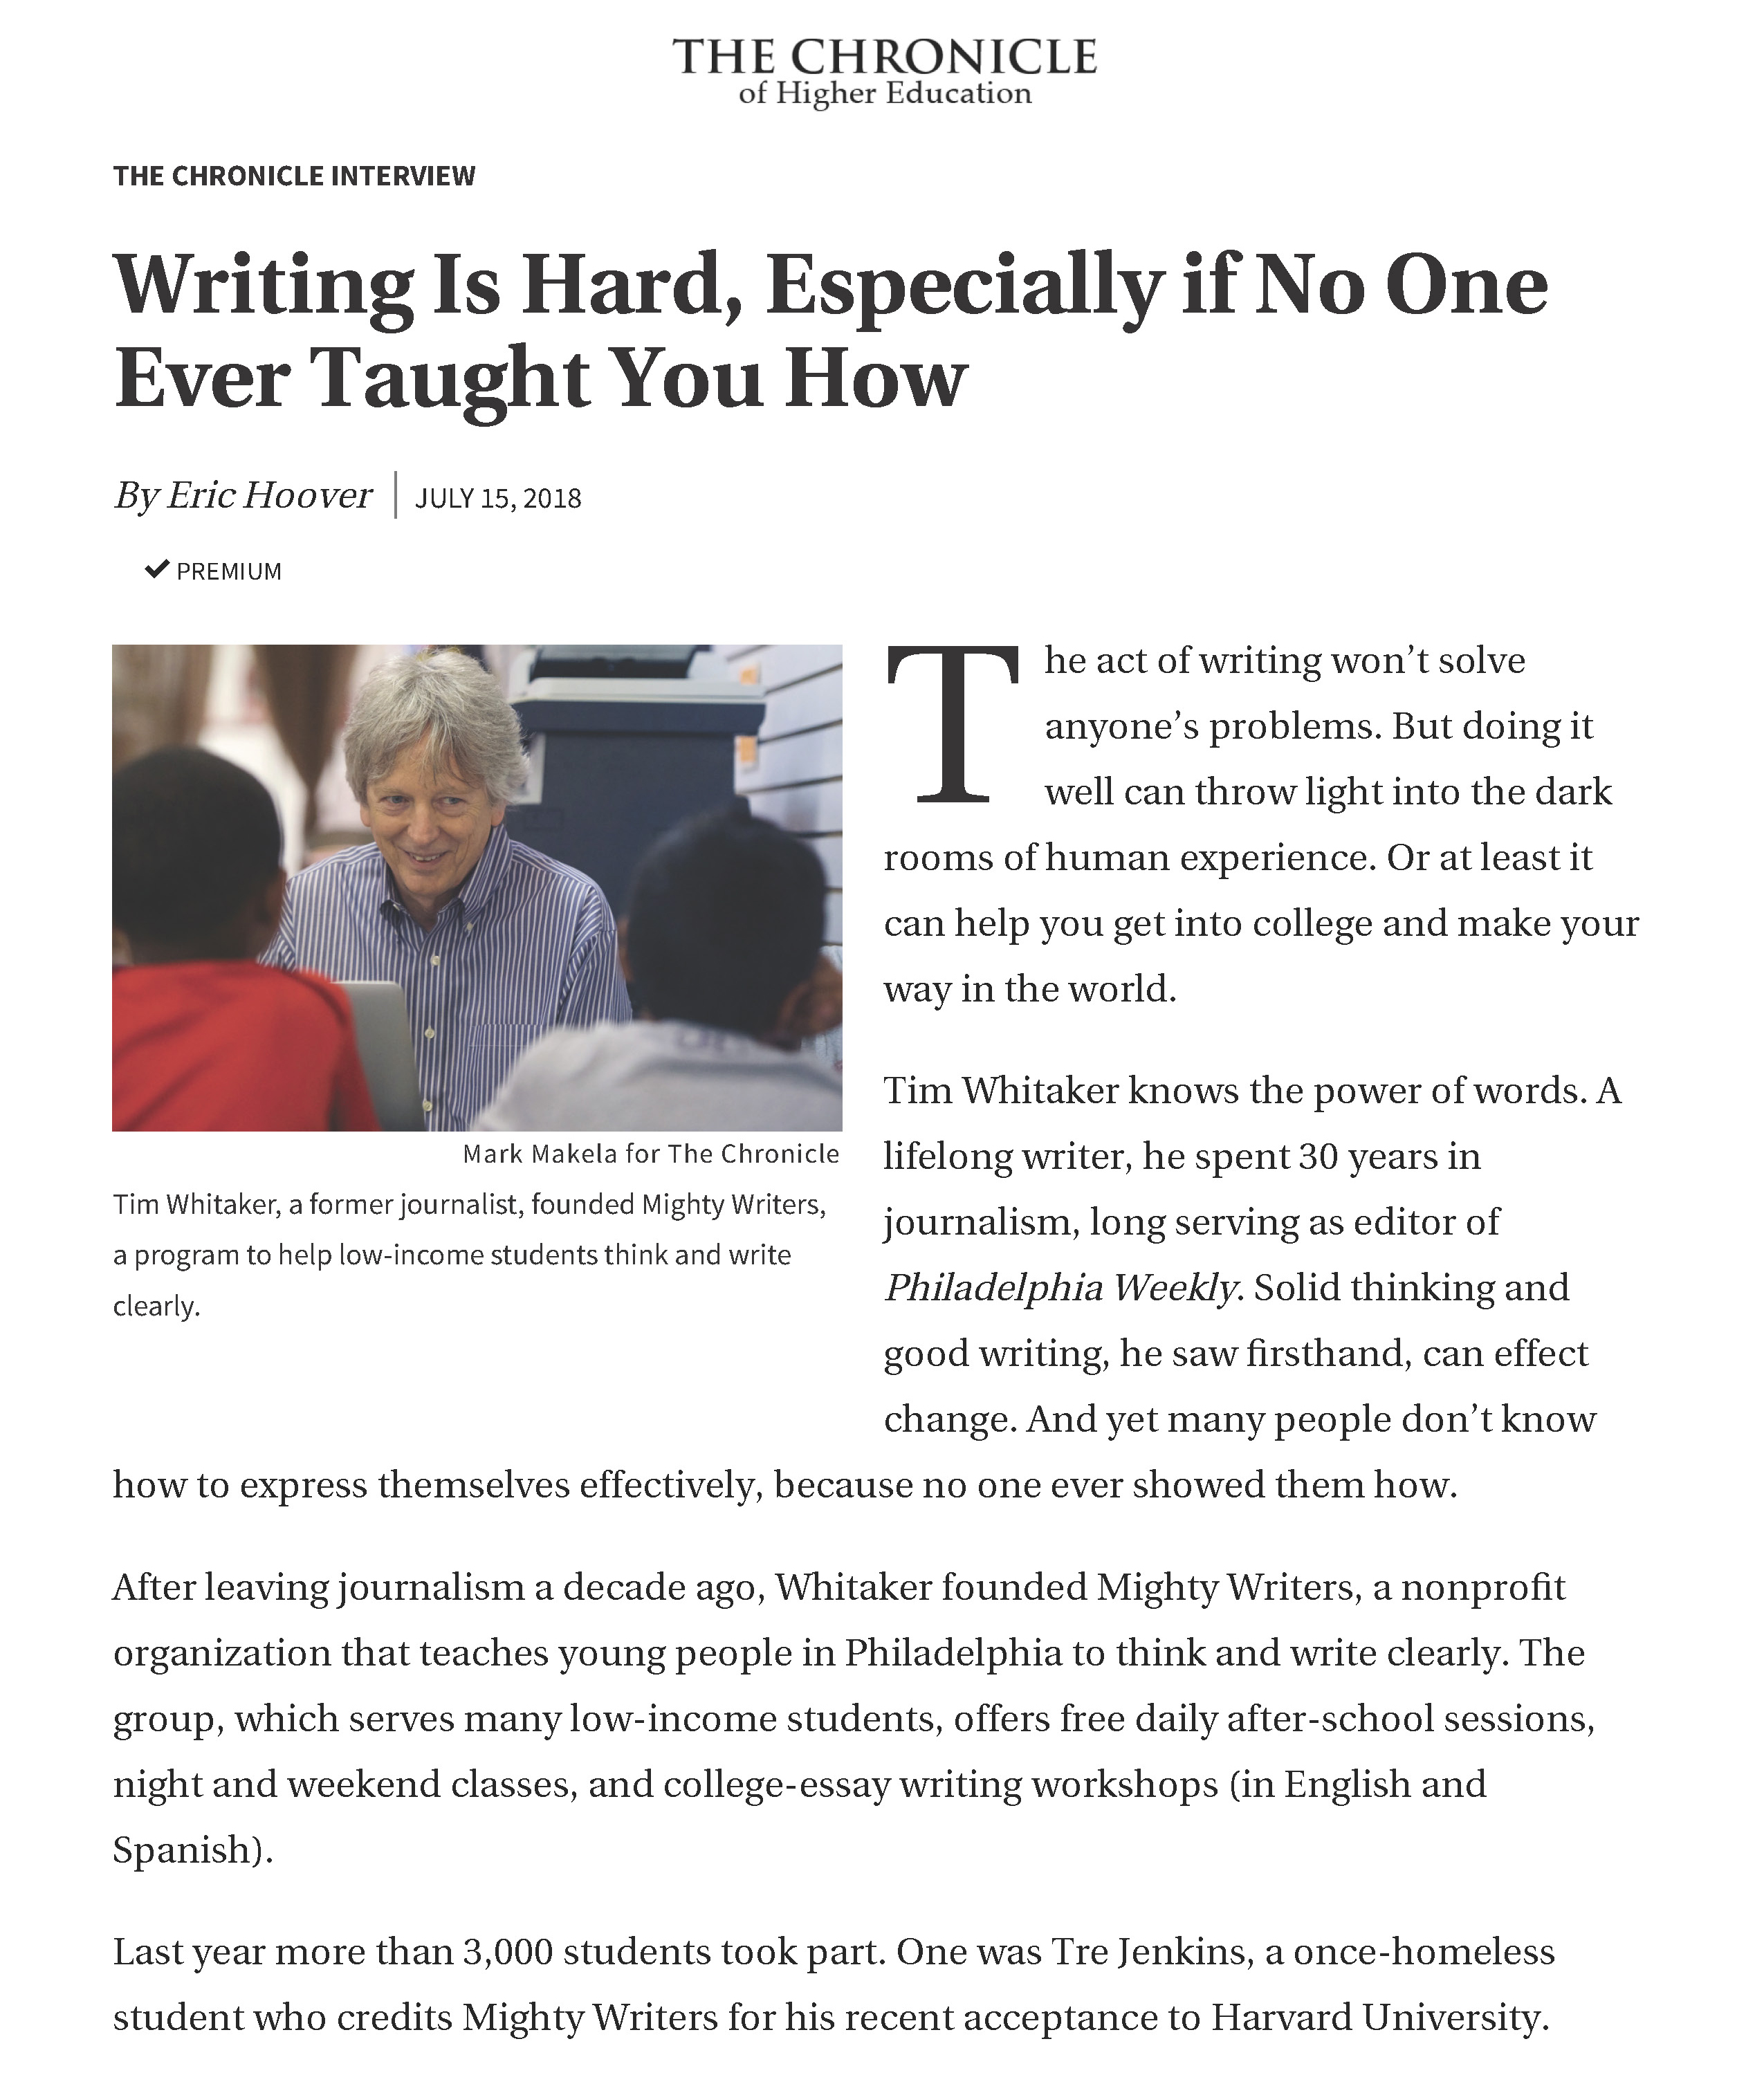 Writing Is Hard, Especially if No One Ever Taught You How - The Chronicle of Higher Education_Page_1a